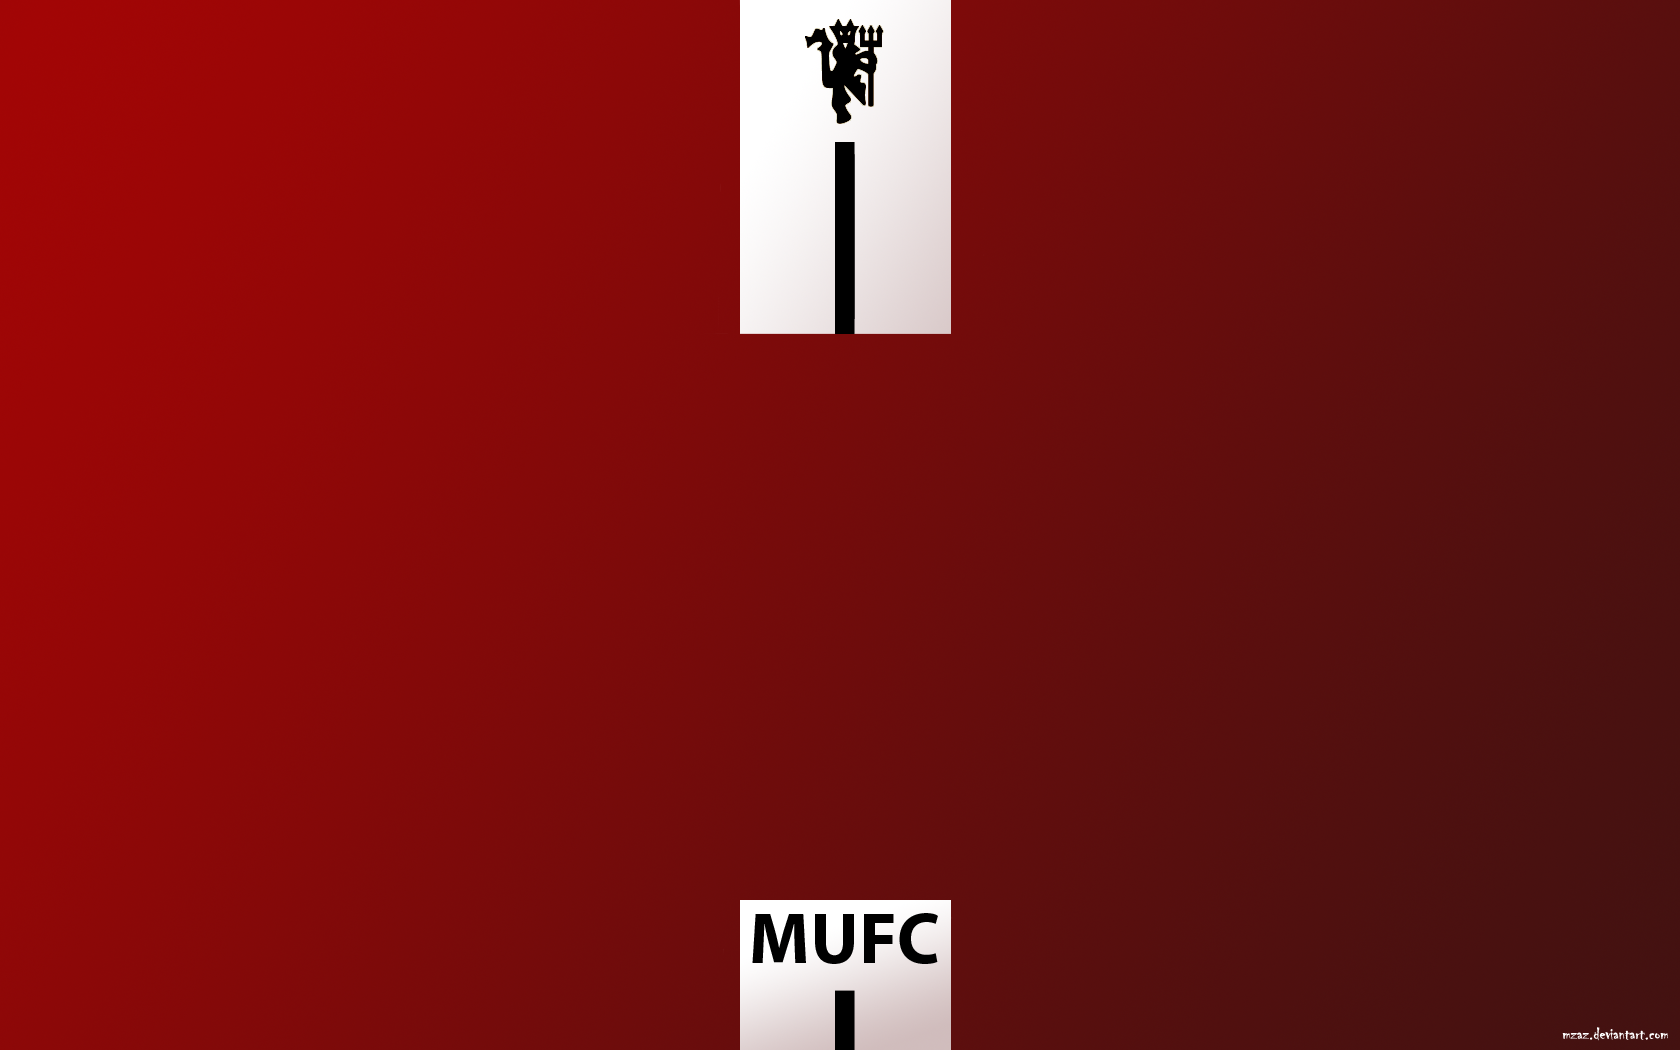 Manchester United Wallpaper Hd Collection For Free Download Manchester United Wallpaper Manchester United Sports Wallpapers